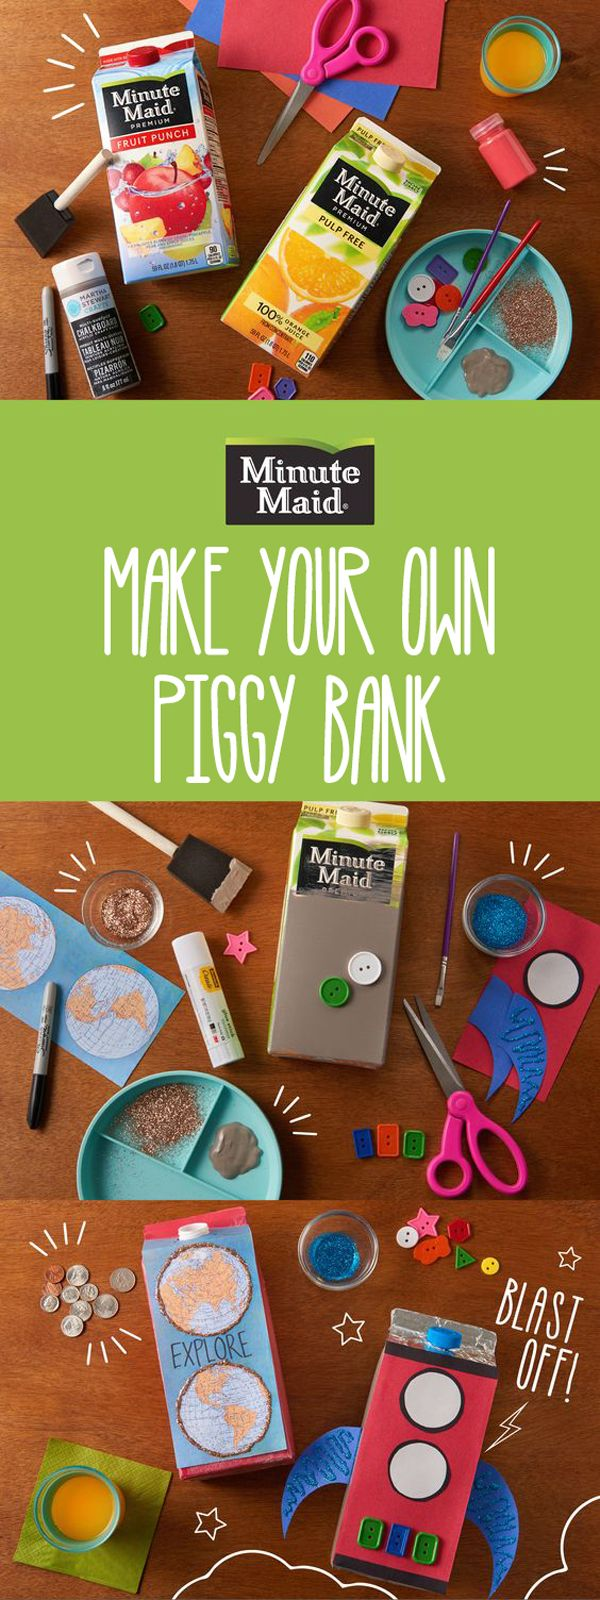 Turn your favorite Minute Maid juice drink carton into a fun DIY piggy bank project.